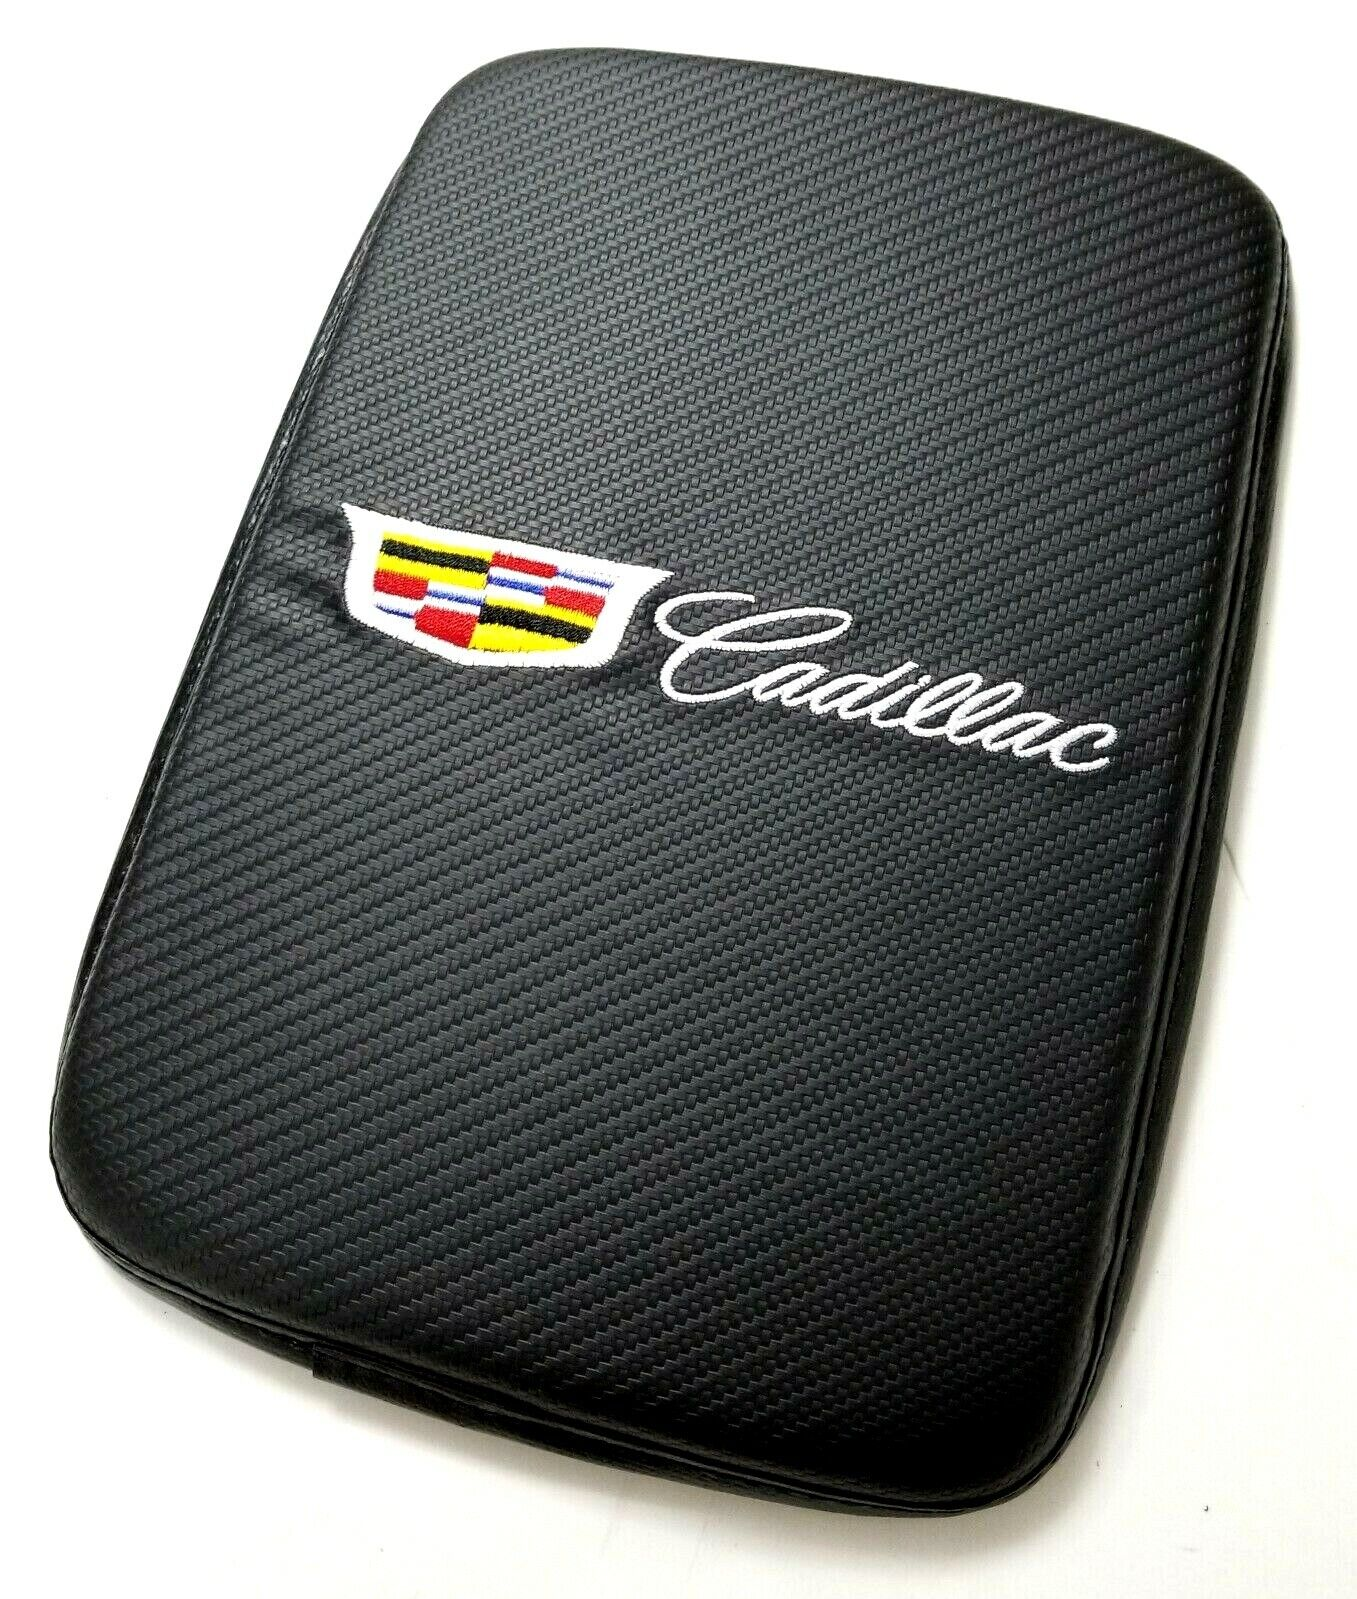 Car Parts - BRAND NEW CADILLAC Carbon Fiber Car Center Console Armrest Cushion Pad Cover